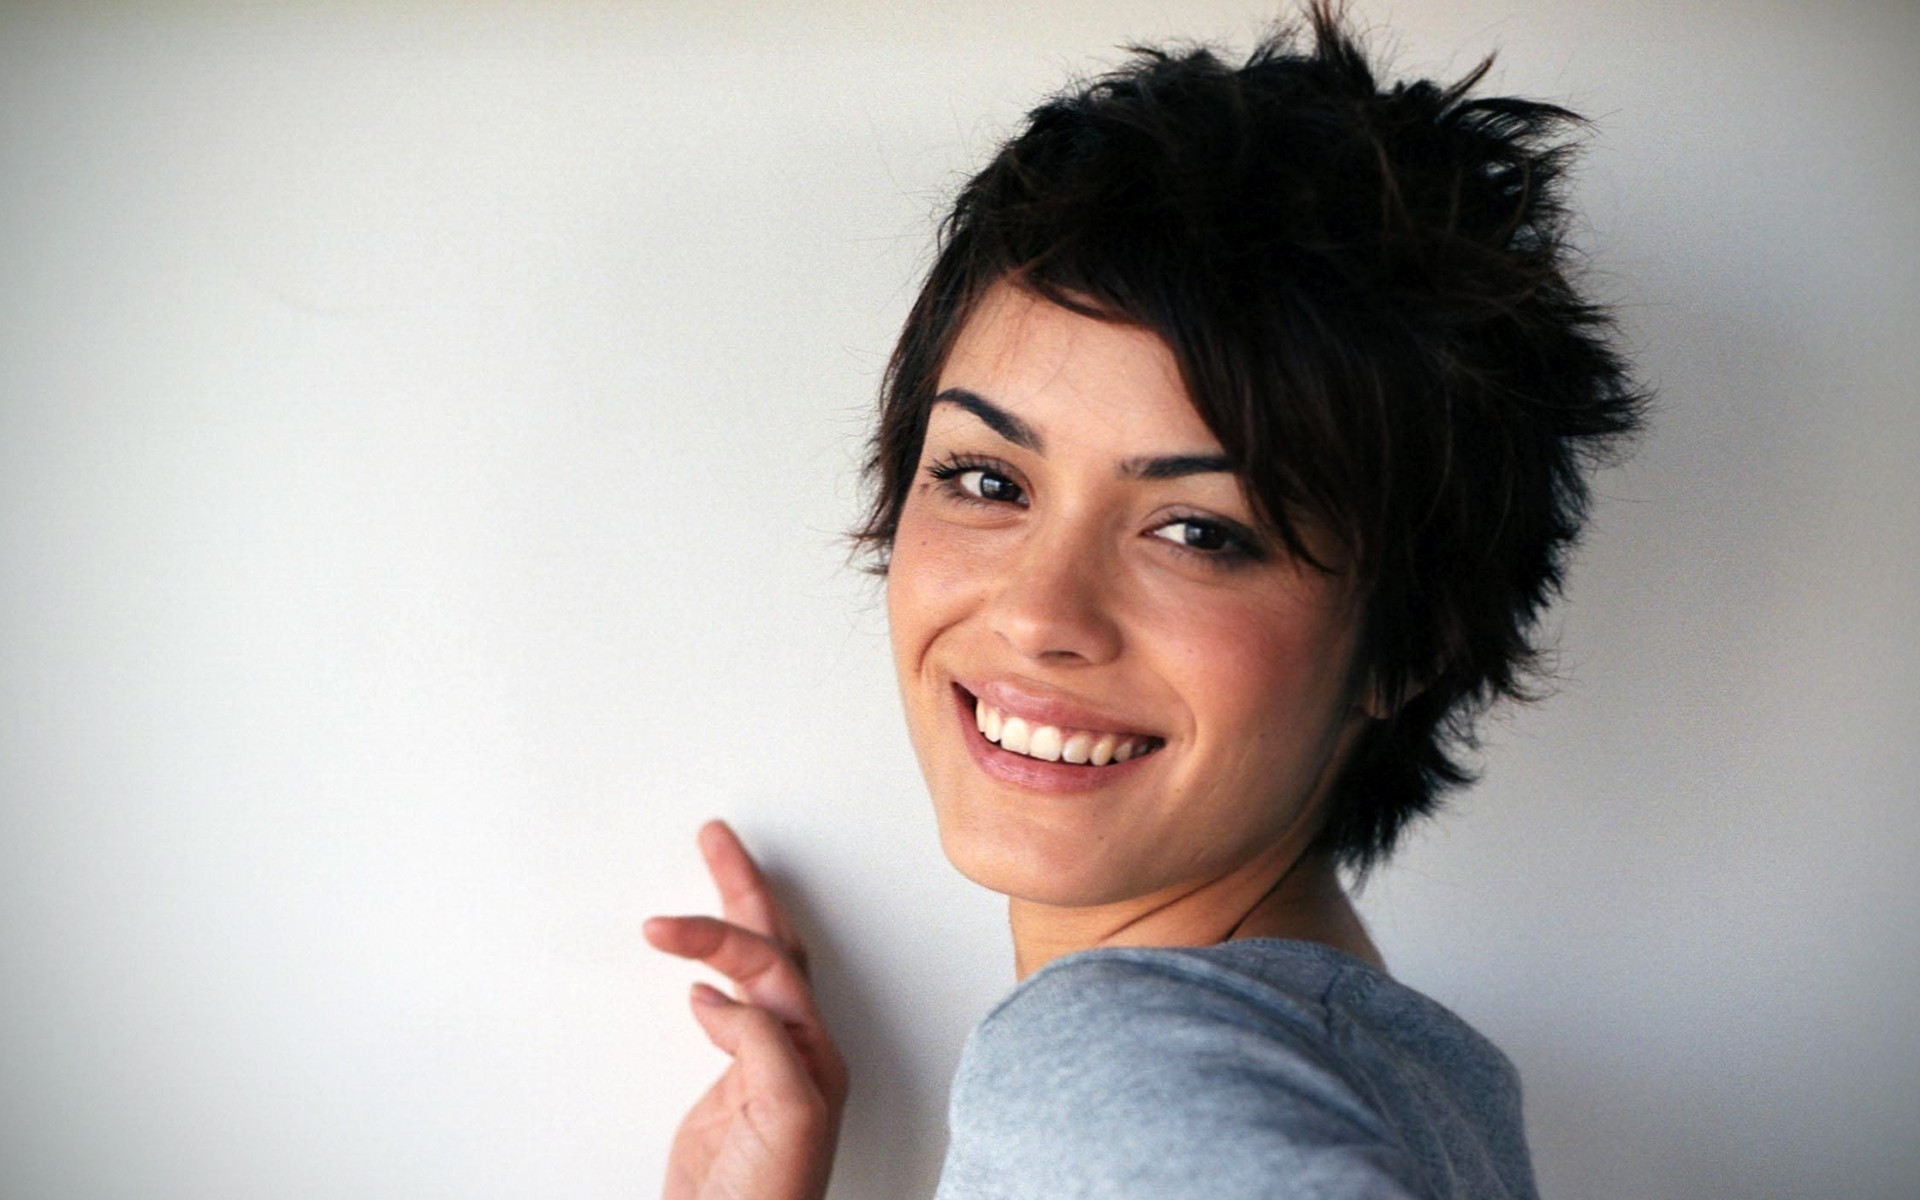 Sinister 2 Set to Begin Production in Chicago As Shannyn Sossamon Cast